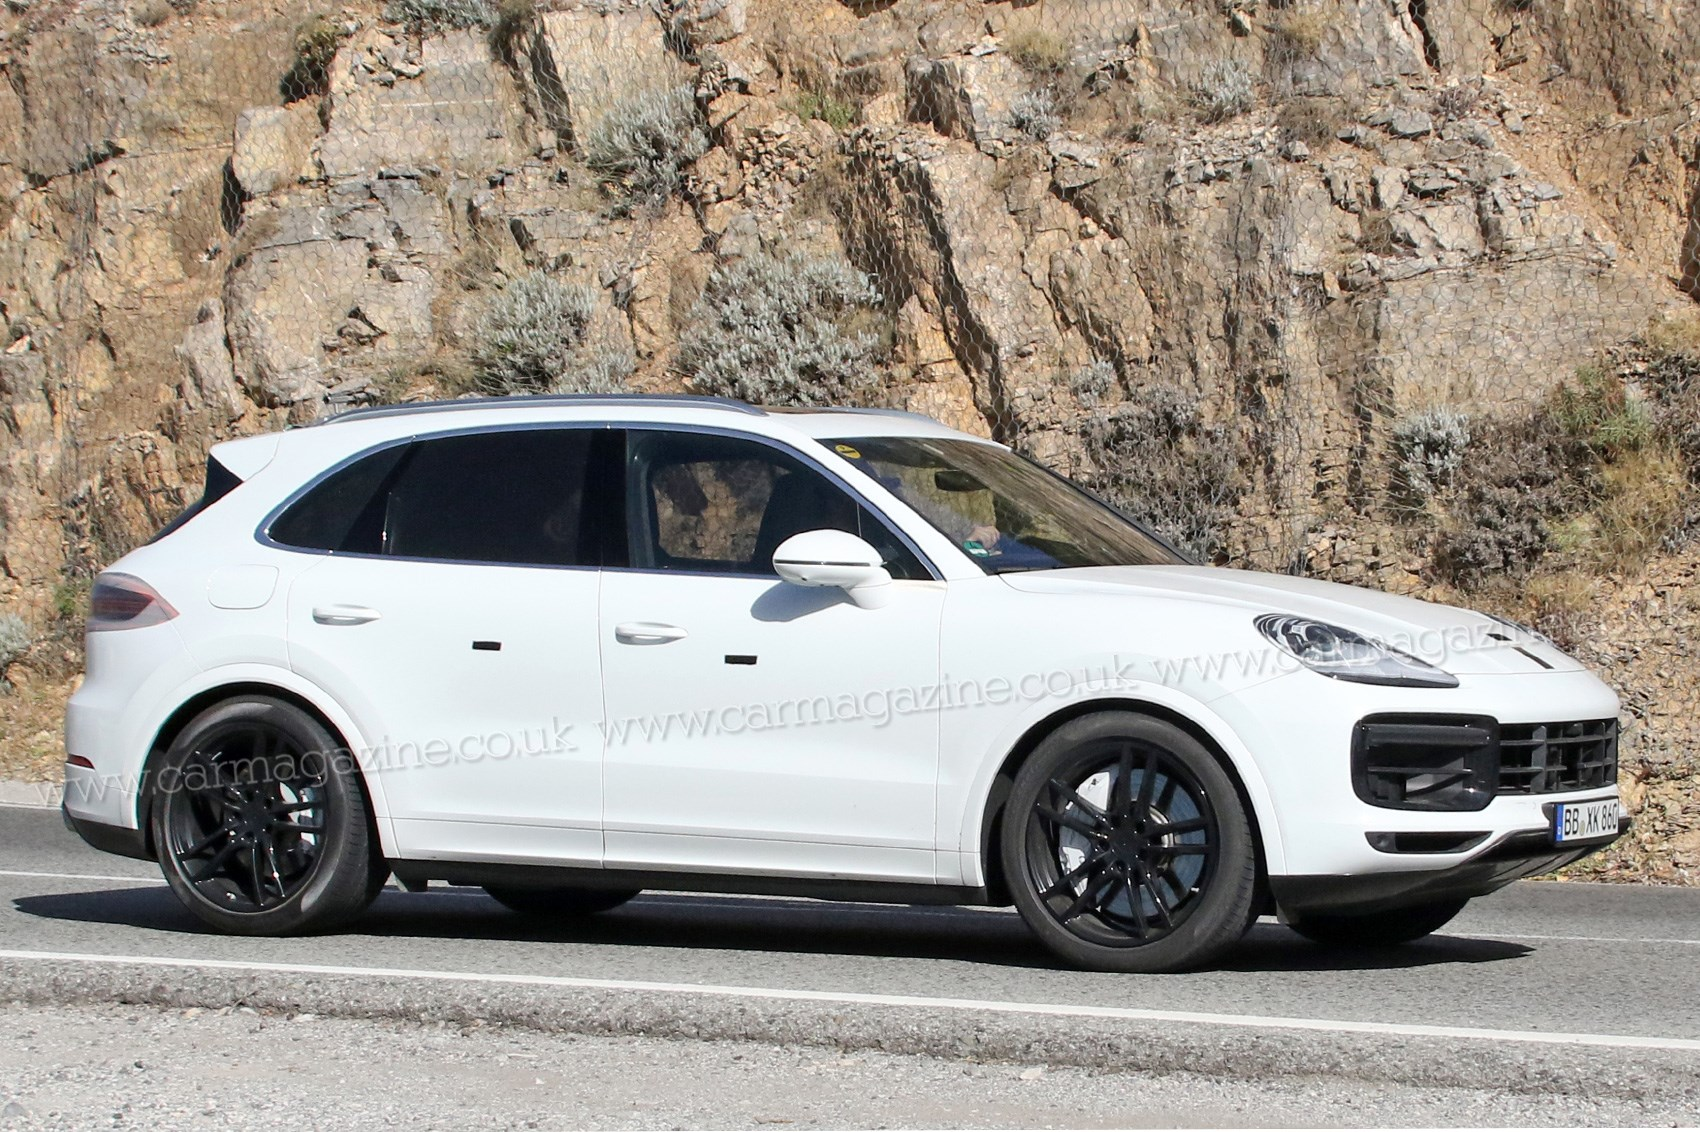 Porsche recalls Cayenne to address diesel emissions